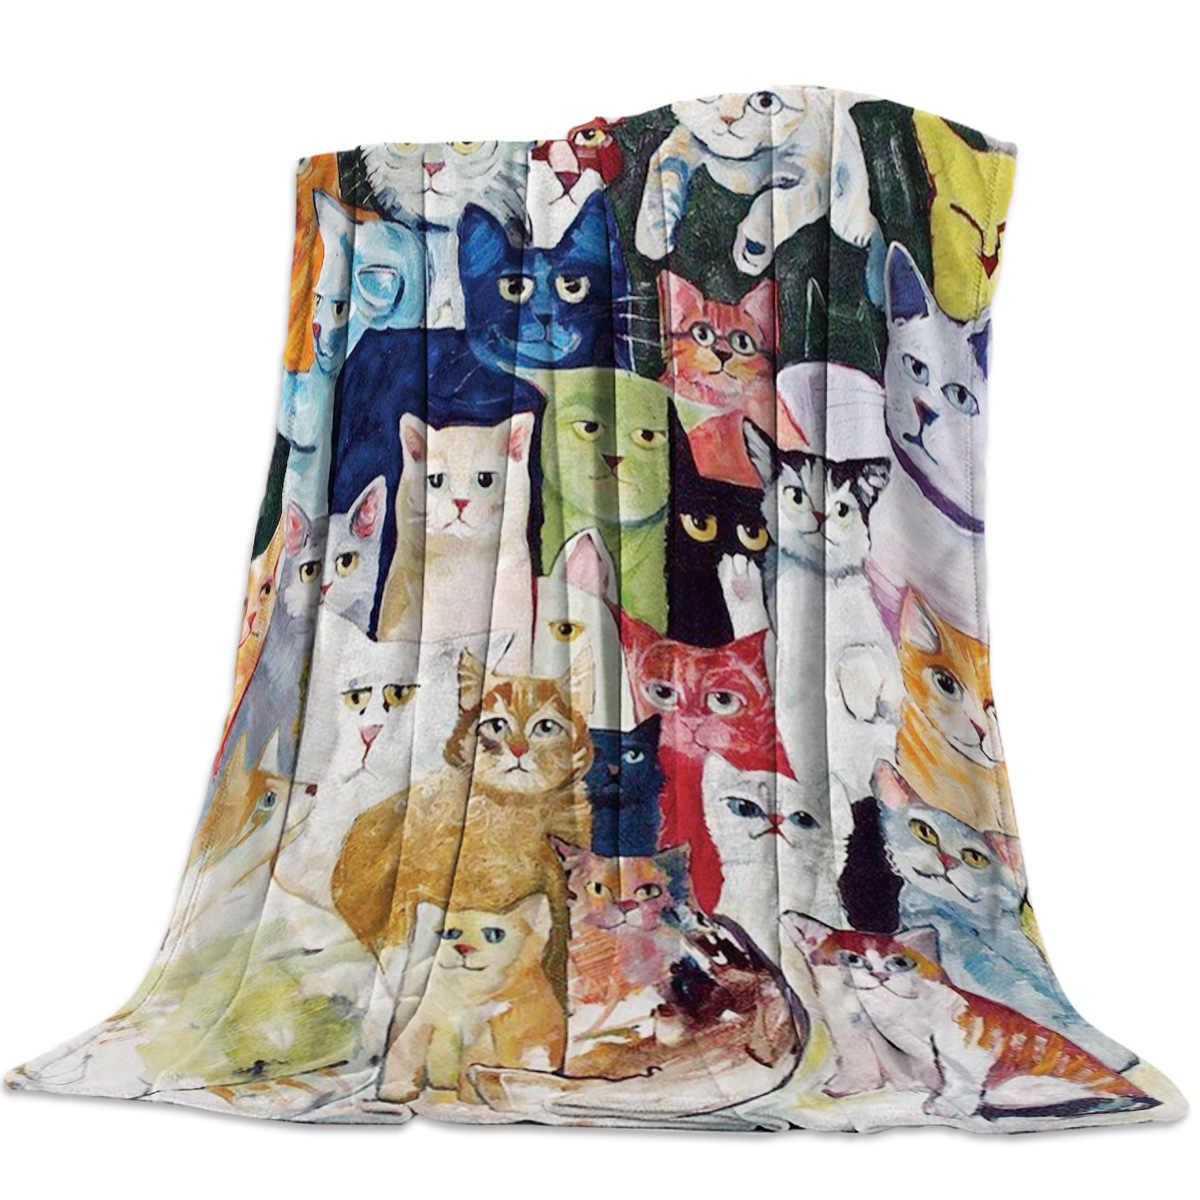 Hand Drawn Art Group Of Cats Throw Blanket Soft Warm Microfiber Blanket Flannel Blanket